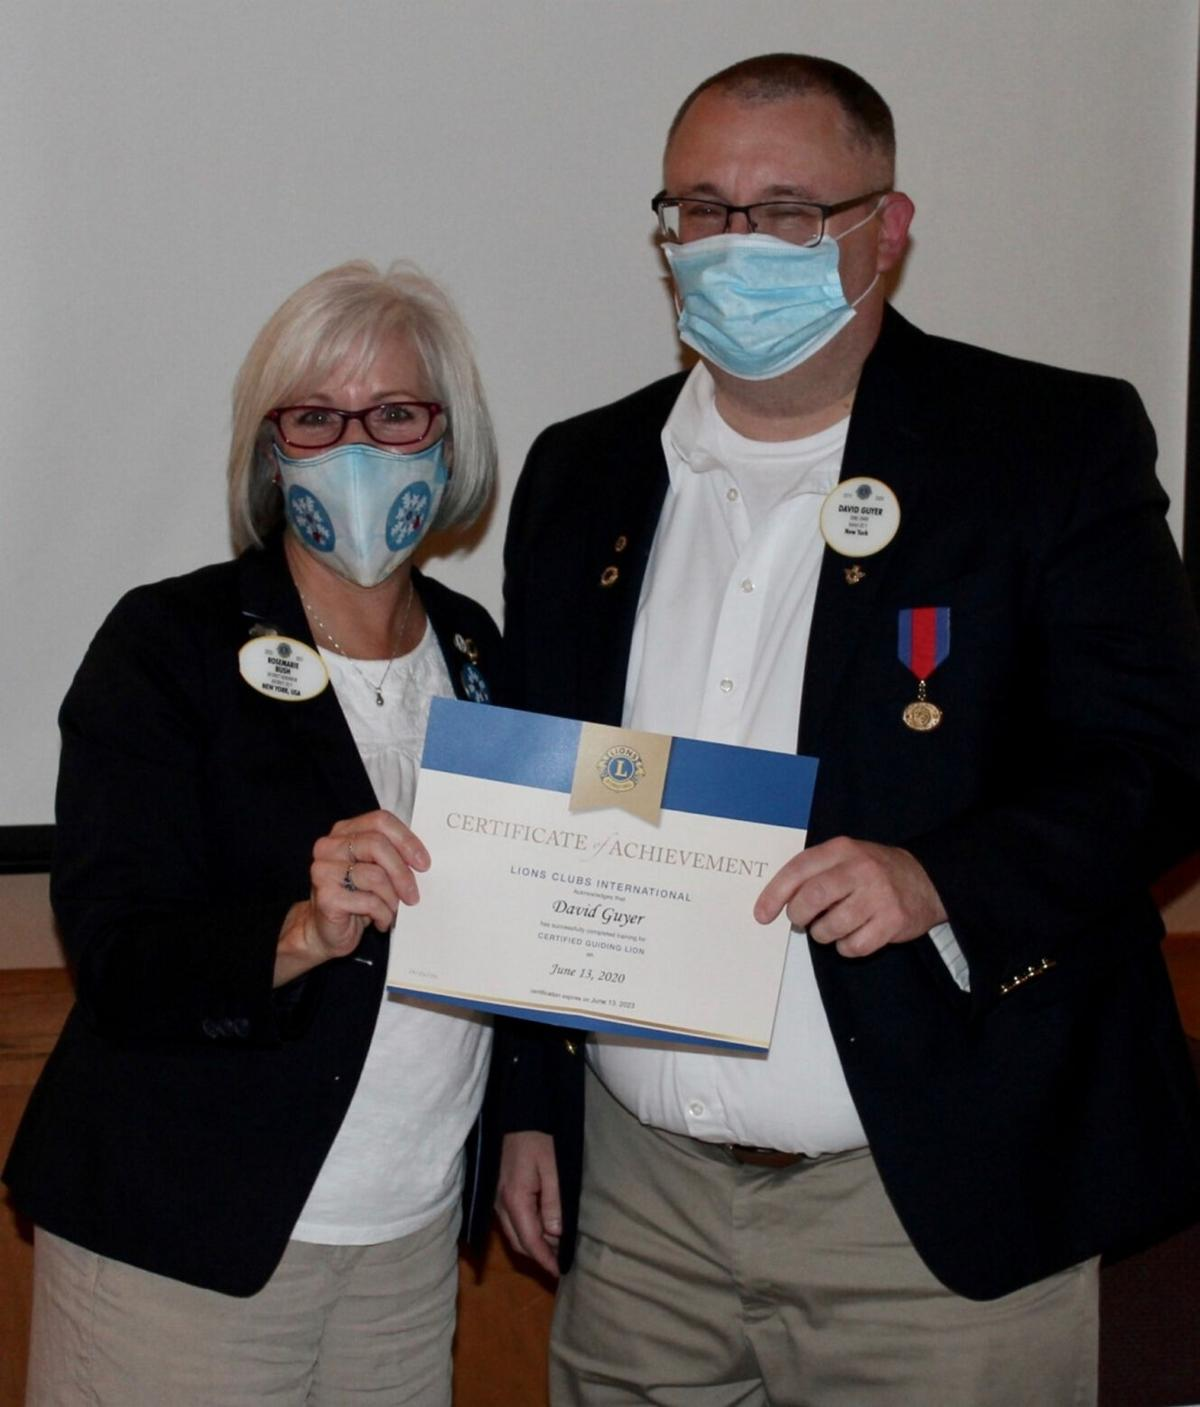 District governor visits joint Fulton-Oswego Lions meeting